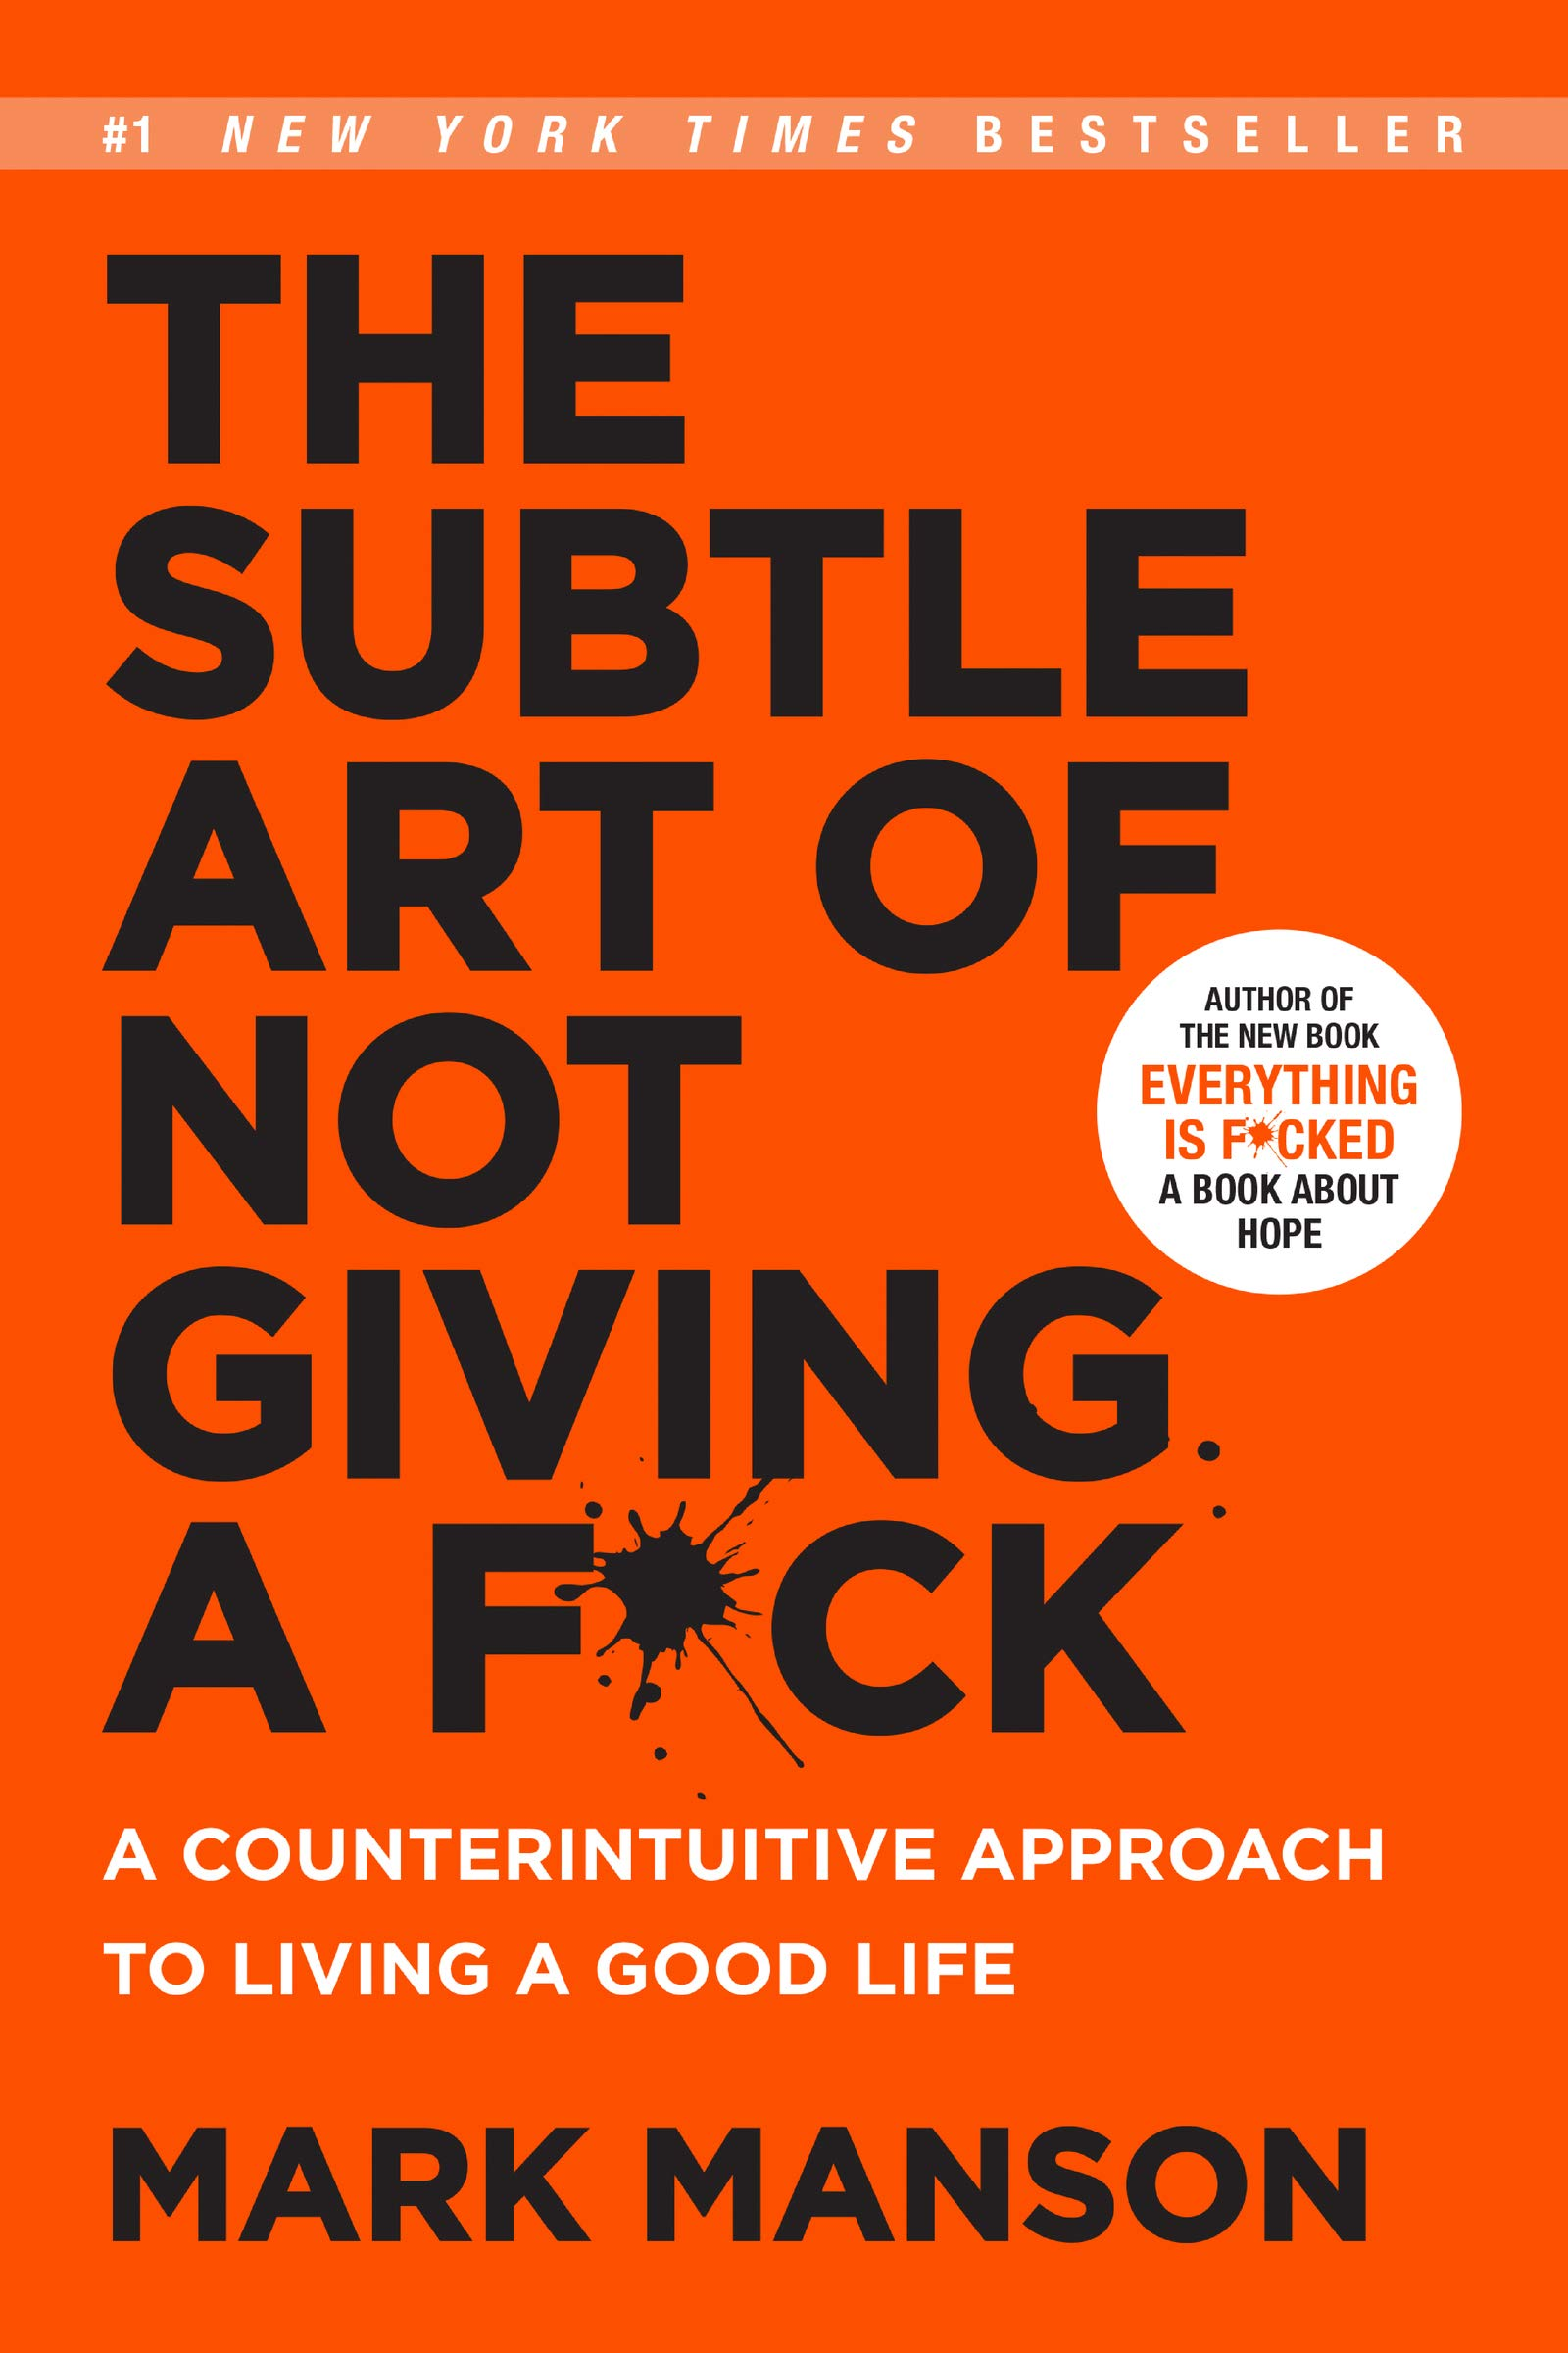 Buy The Subtle Art of Not Giving a F*ck Book Online at Low